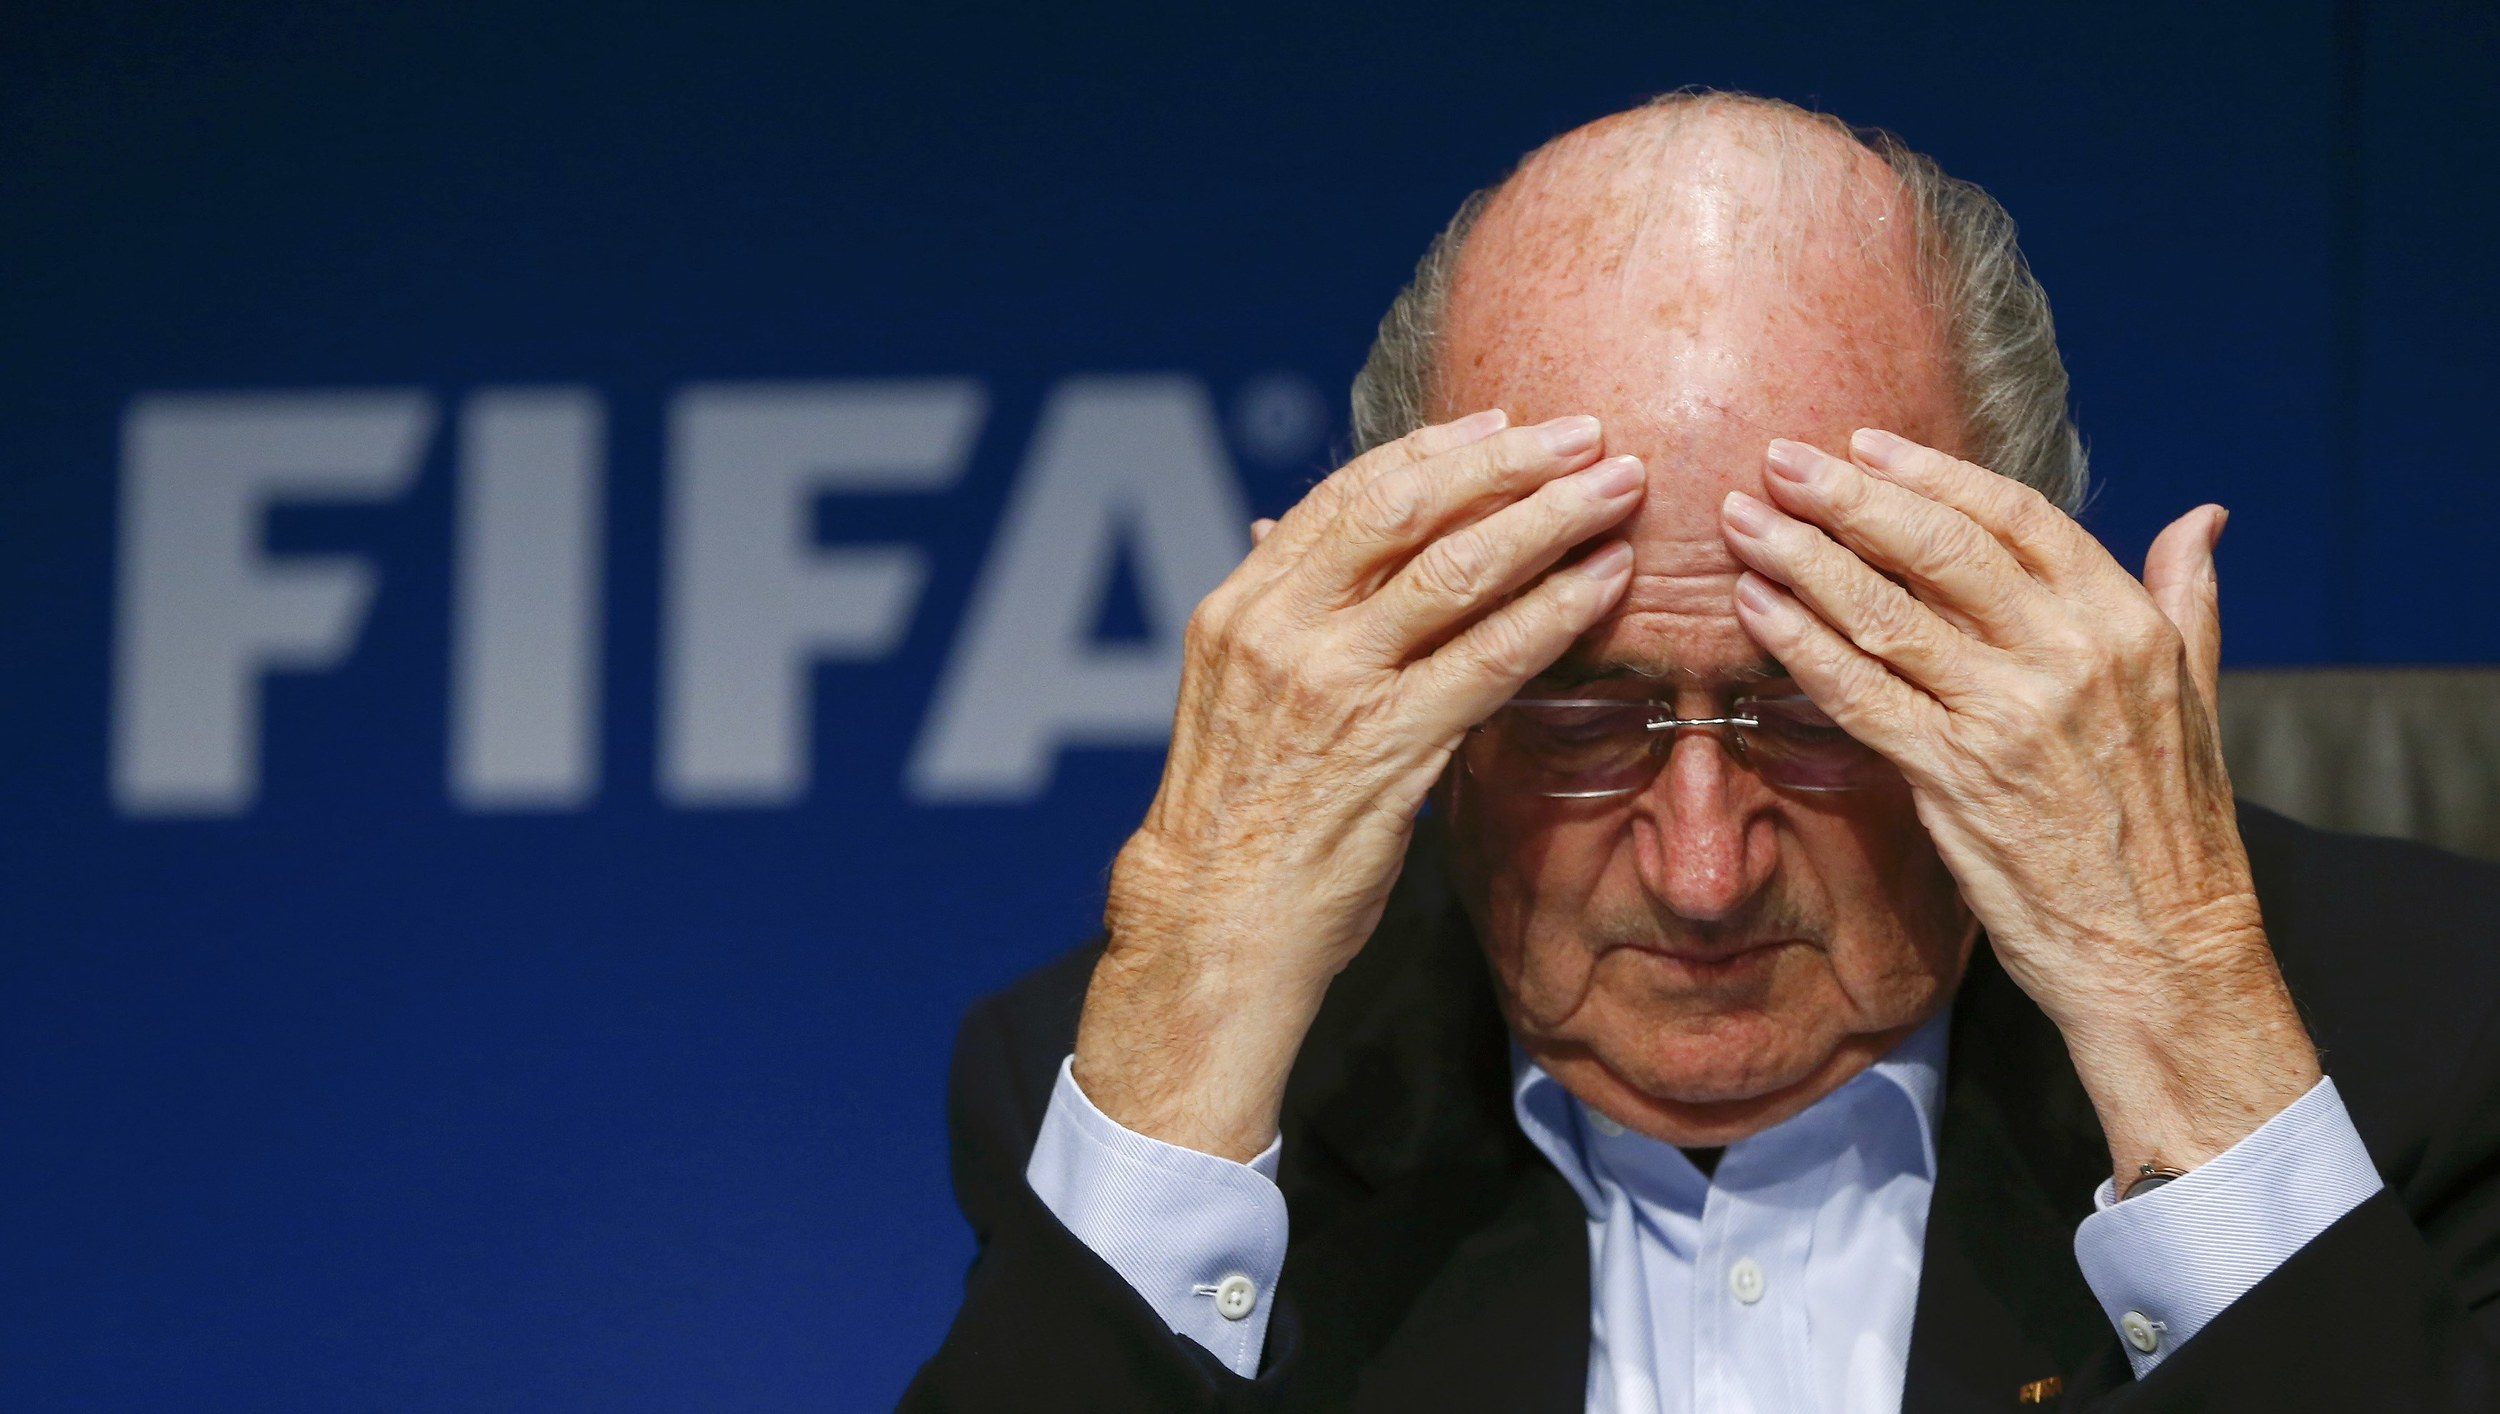 Suspended president of FIFA, Sepp Blatter, looks dejected as he faces journalists at a news conference in September 2014. The disgraced Swiss is facing a life ban from football after a series of corruption allegations, most notably,money laundering related to the allocation of the 2018 and 2022 FIFA soccer World Cups in Russia and Qatar. Image supplied by Action Images / Arnd Wiegmann.